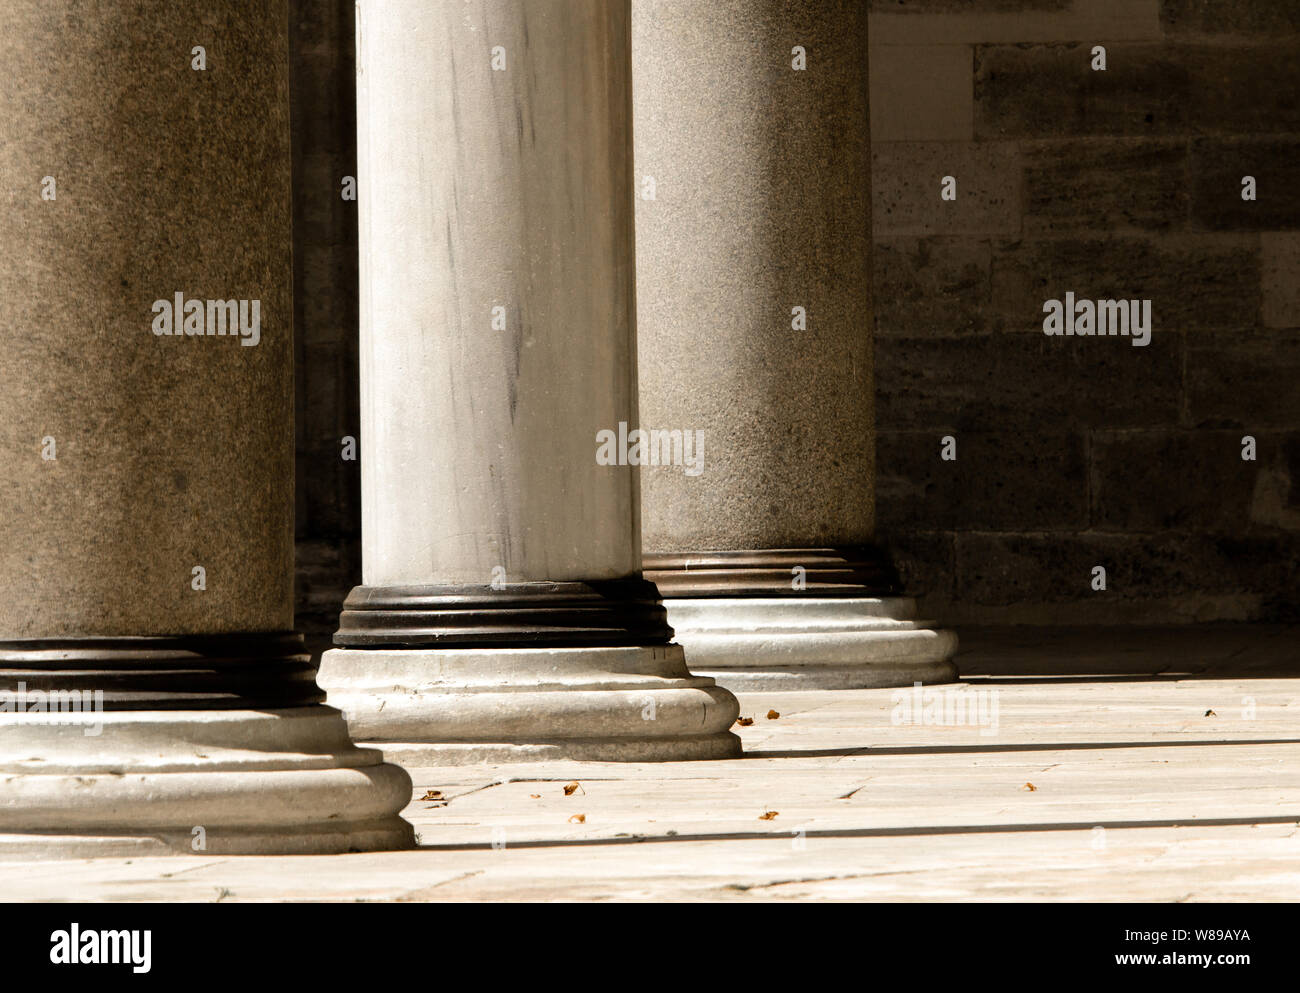 Close up of lower section of three doric order marble columns washed with sunlight in single point perspective image. Stock Photo